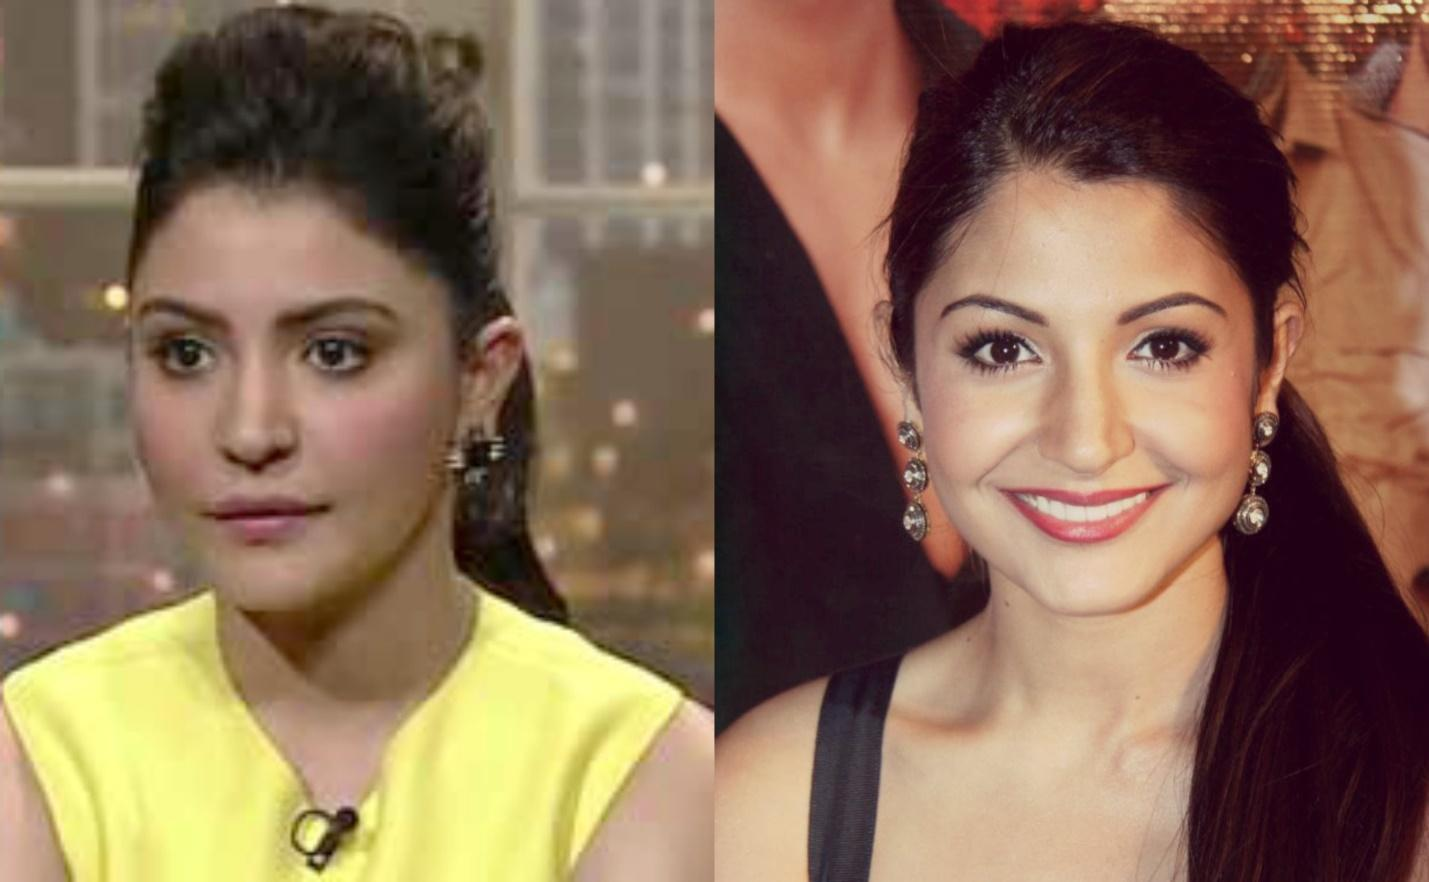 http://vanani.com/wp-content/uploads/2015/05/Anushka-Sharma-spoke-Up-regarding-Her-%E2%80%9CLip-Job%E2%80%9D-3.jpg